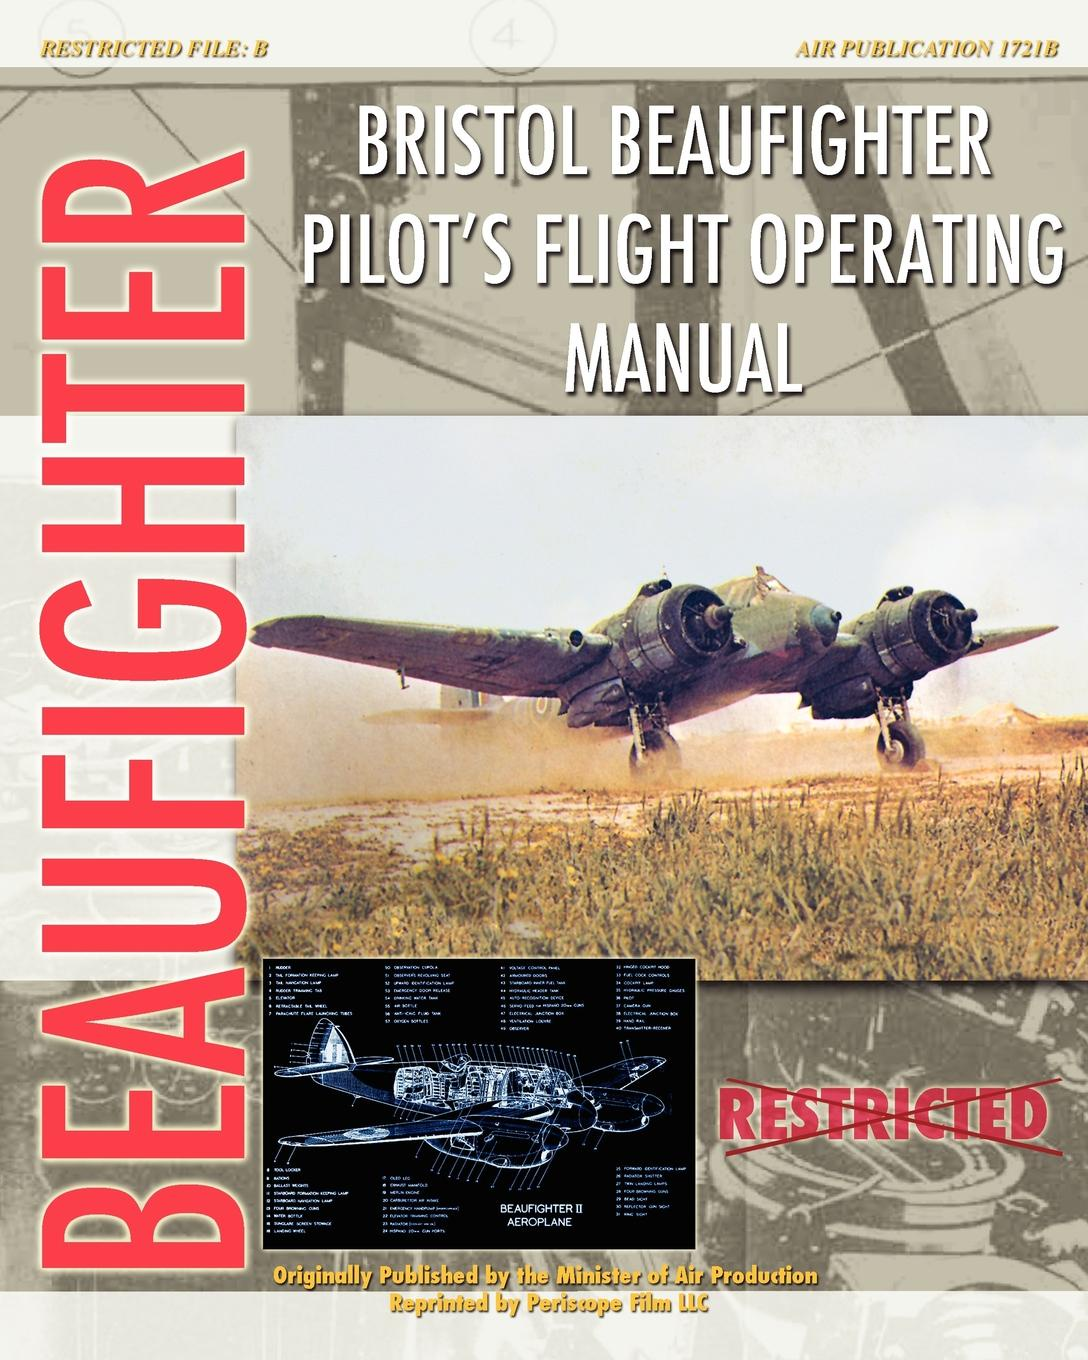 Minister of Aircraft Production Bristol Beaufighter Pilot's Flight Operating Instructions